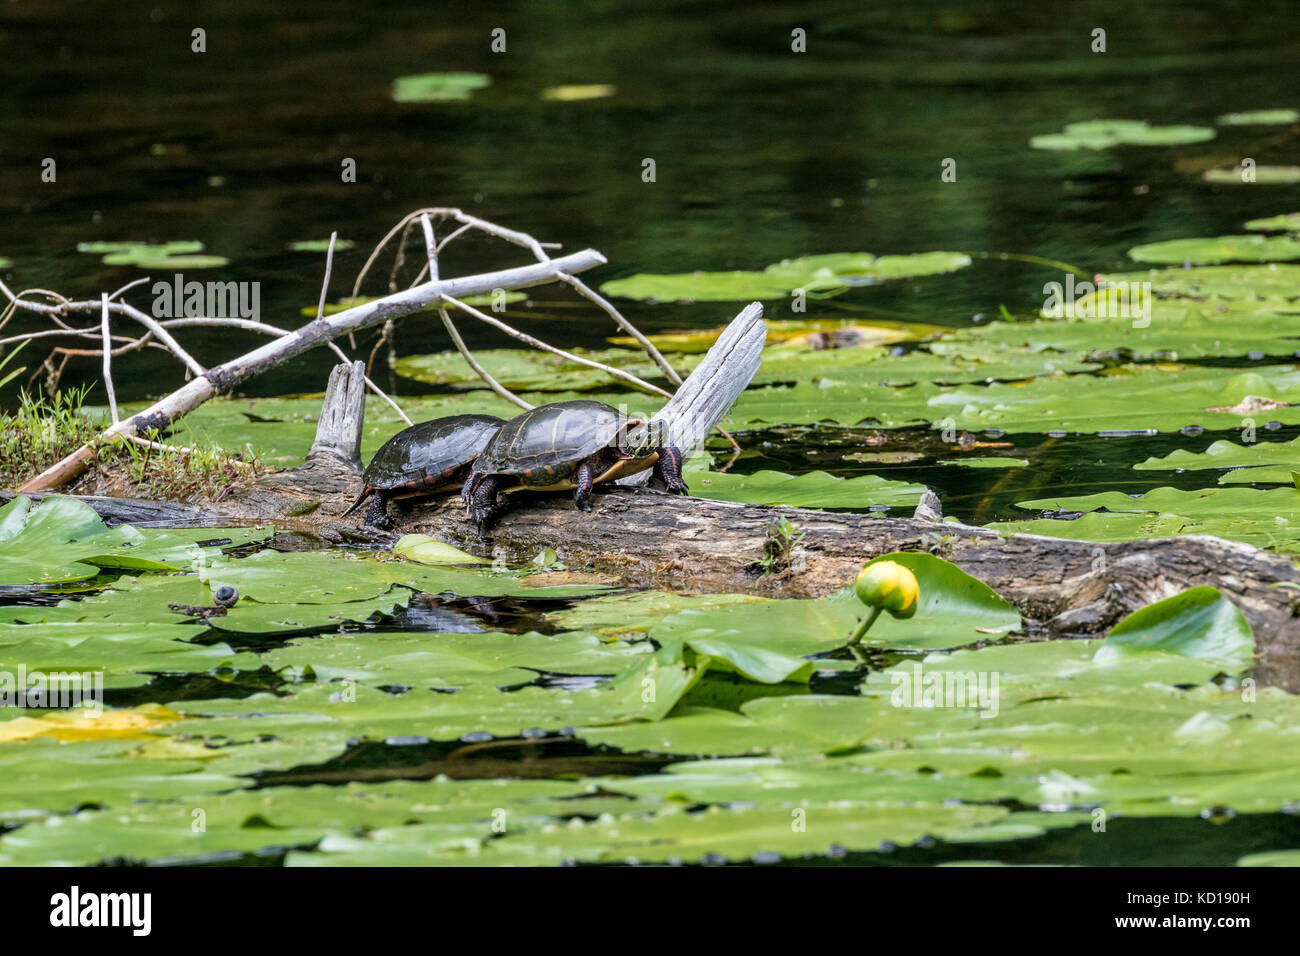 Midland Painted Turtles (Chrysemys picta marginata) sunning in the Pinery Provincial Park, Ontario, Canada - Stock Image